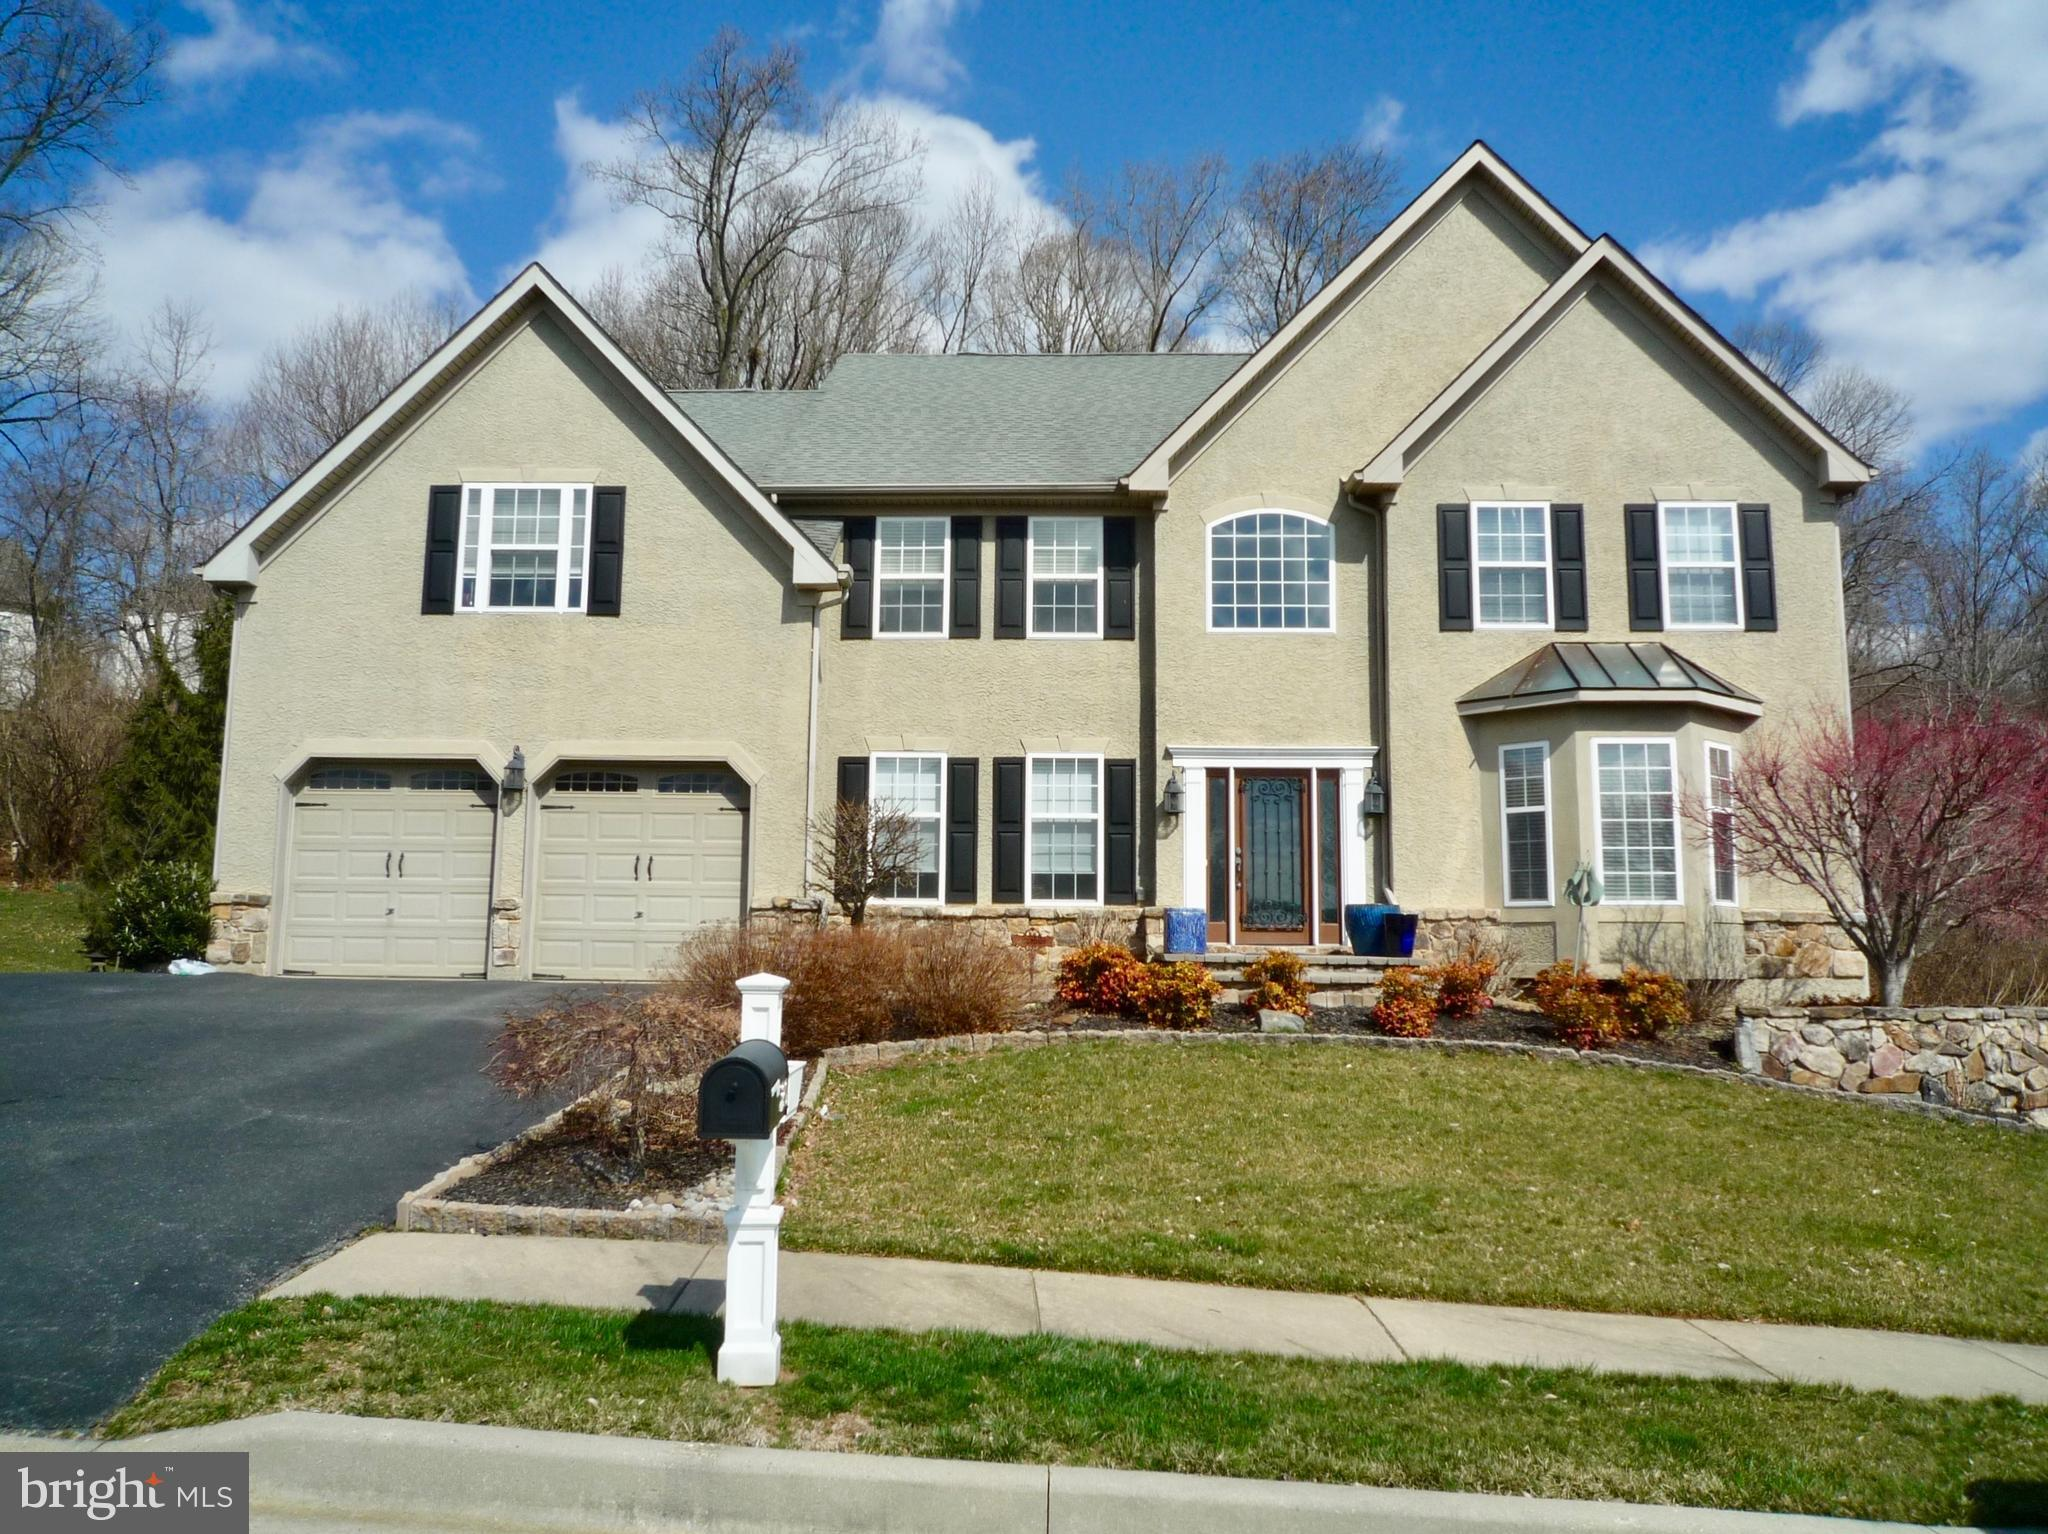 20 DONALD PRESTON DRIVE, NEWARK, DE 19702